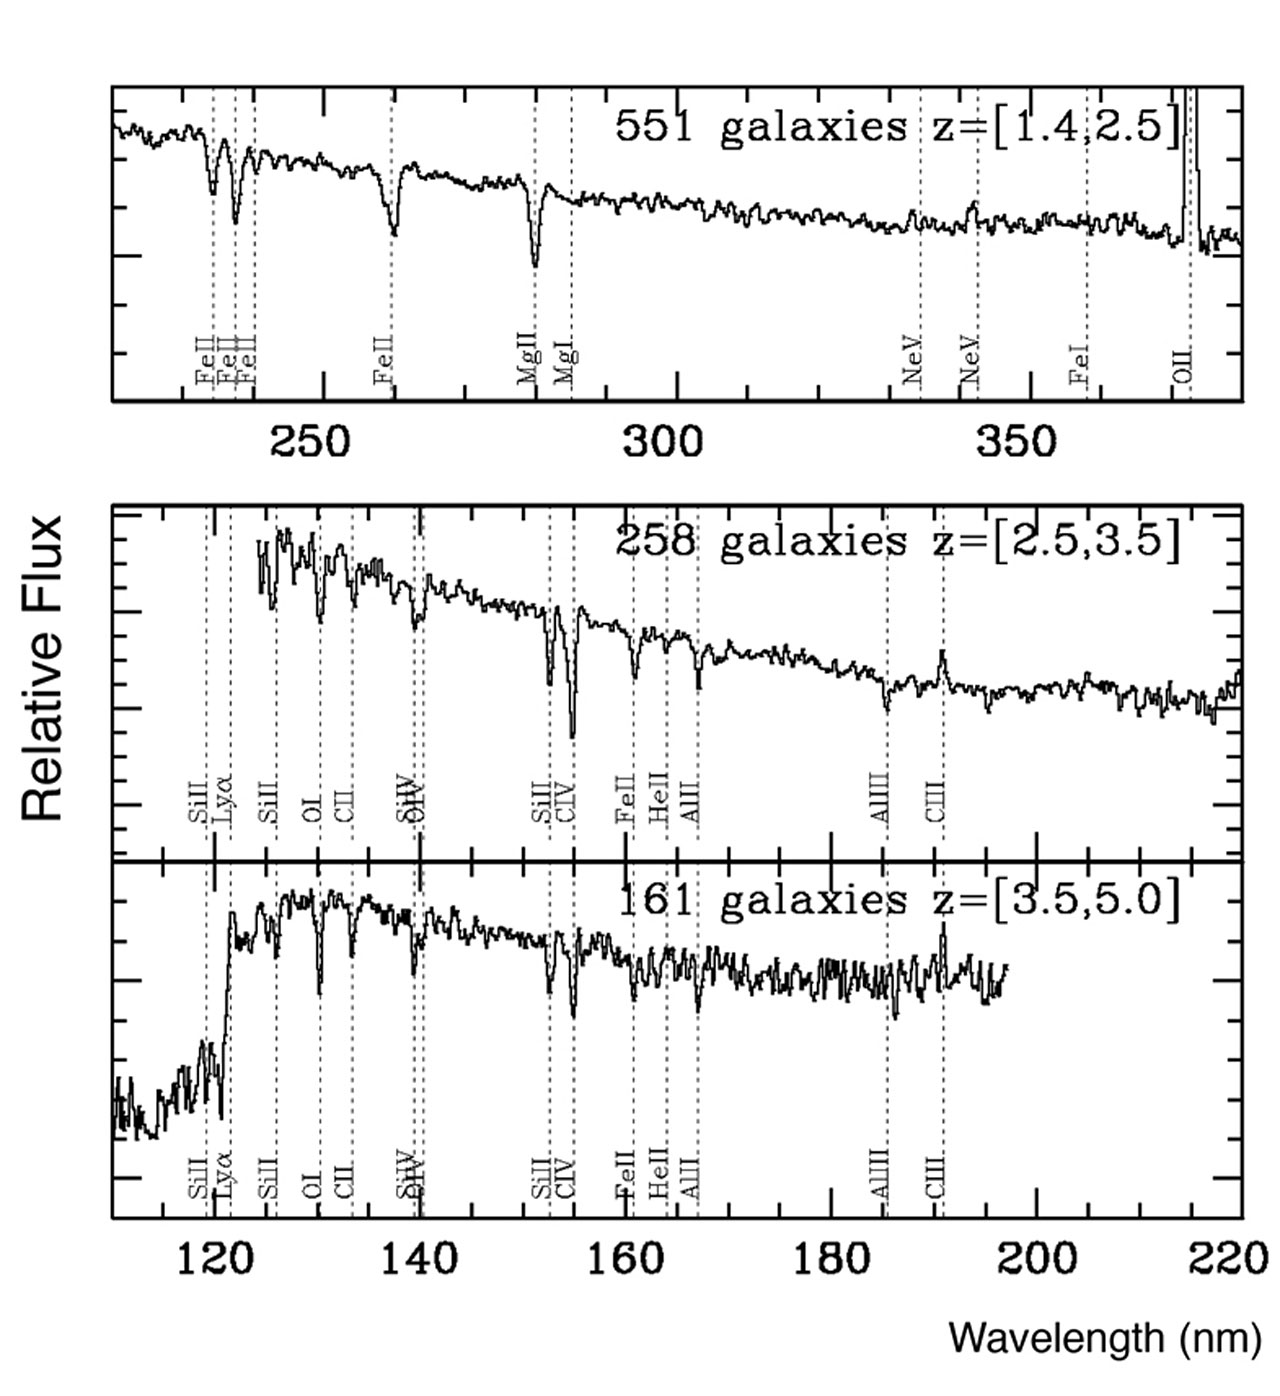 Average Spectra of Distant Galaxies